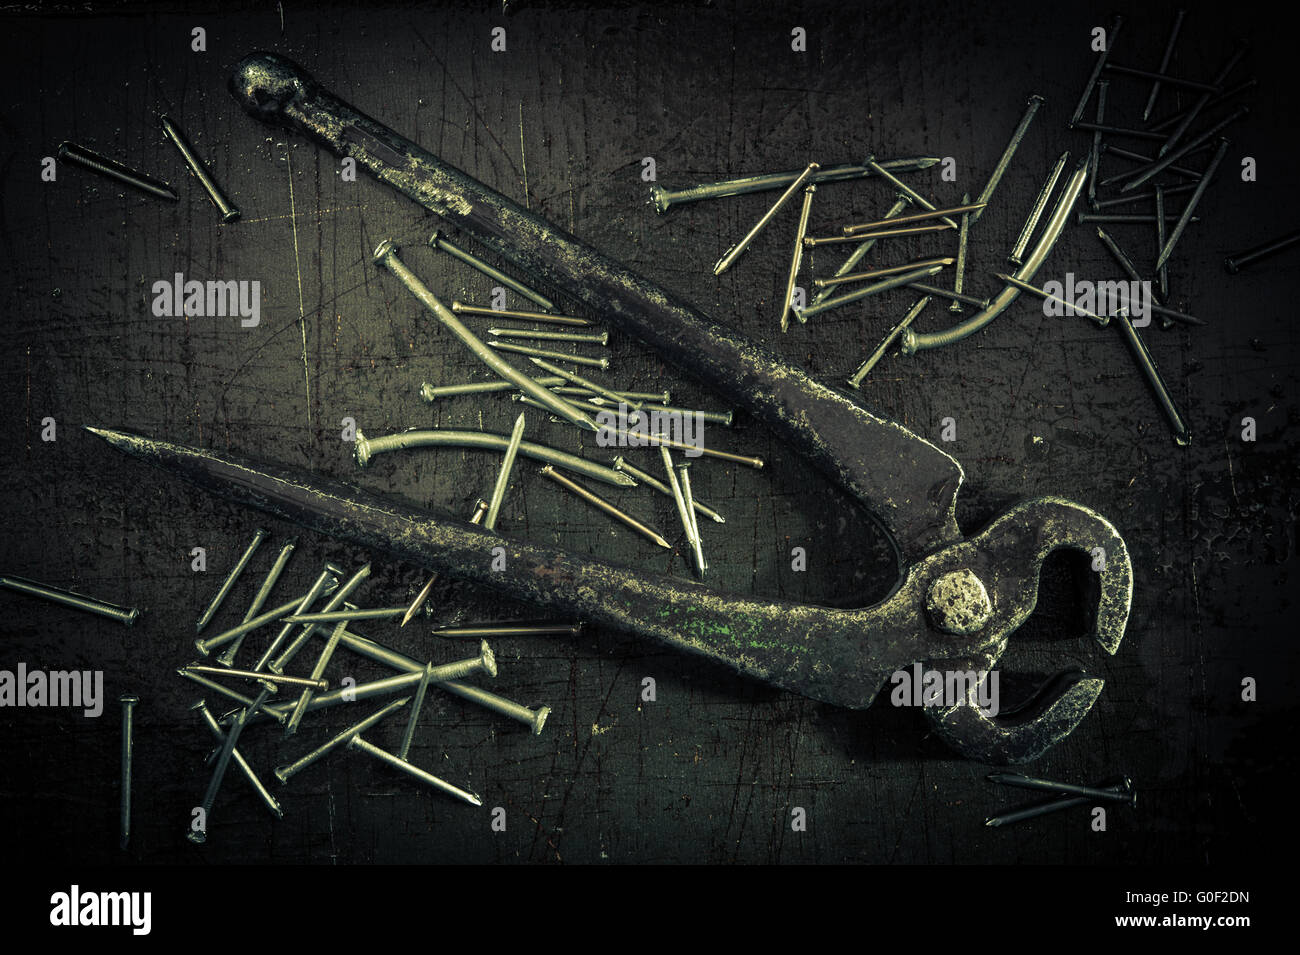 Grunge background with pliers and nails. - Stock Image